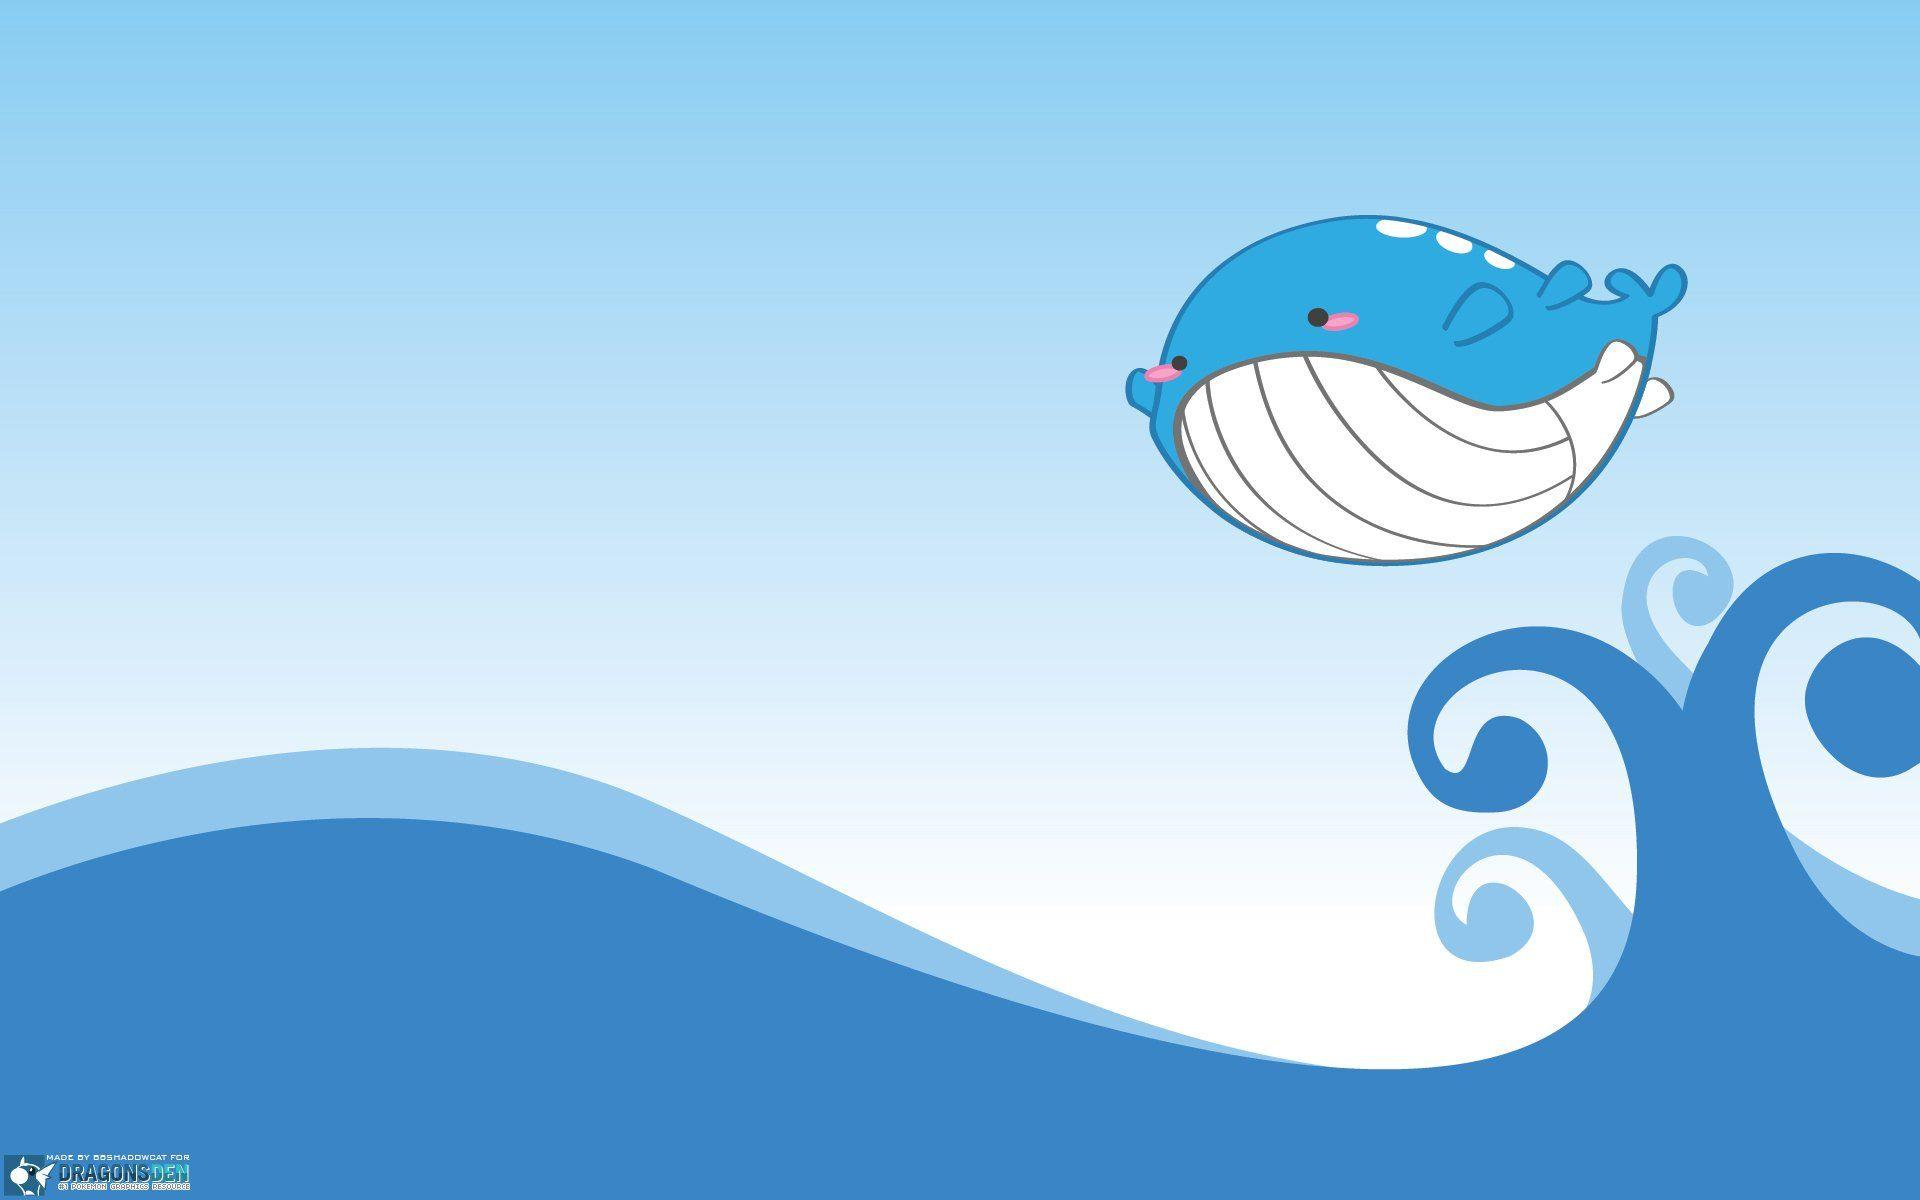 4 Wailord (Pokémon) HD Wallpapers | Background Images - Wallpaper Abyss